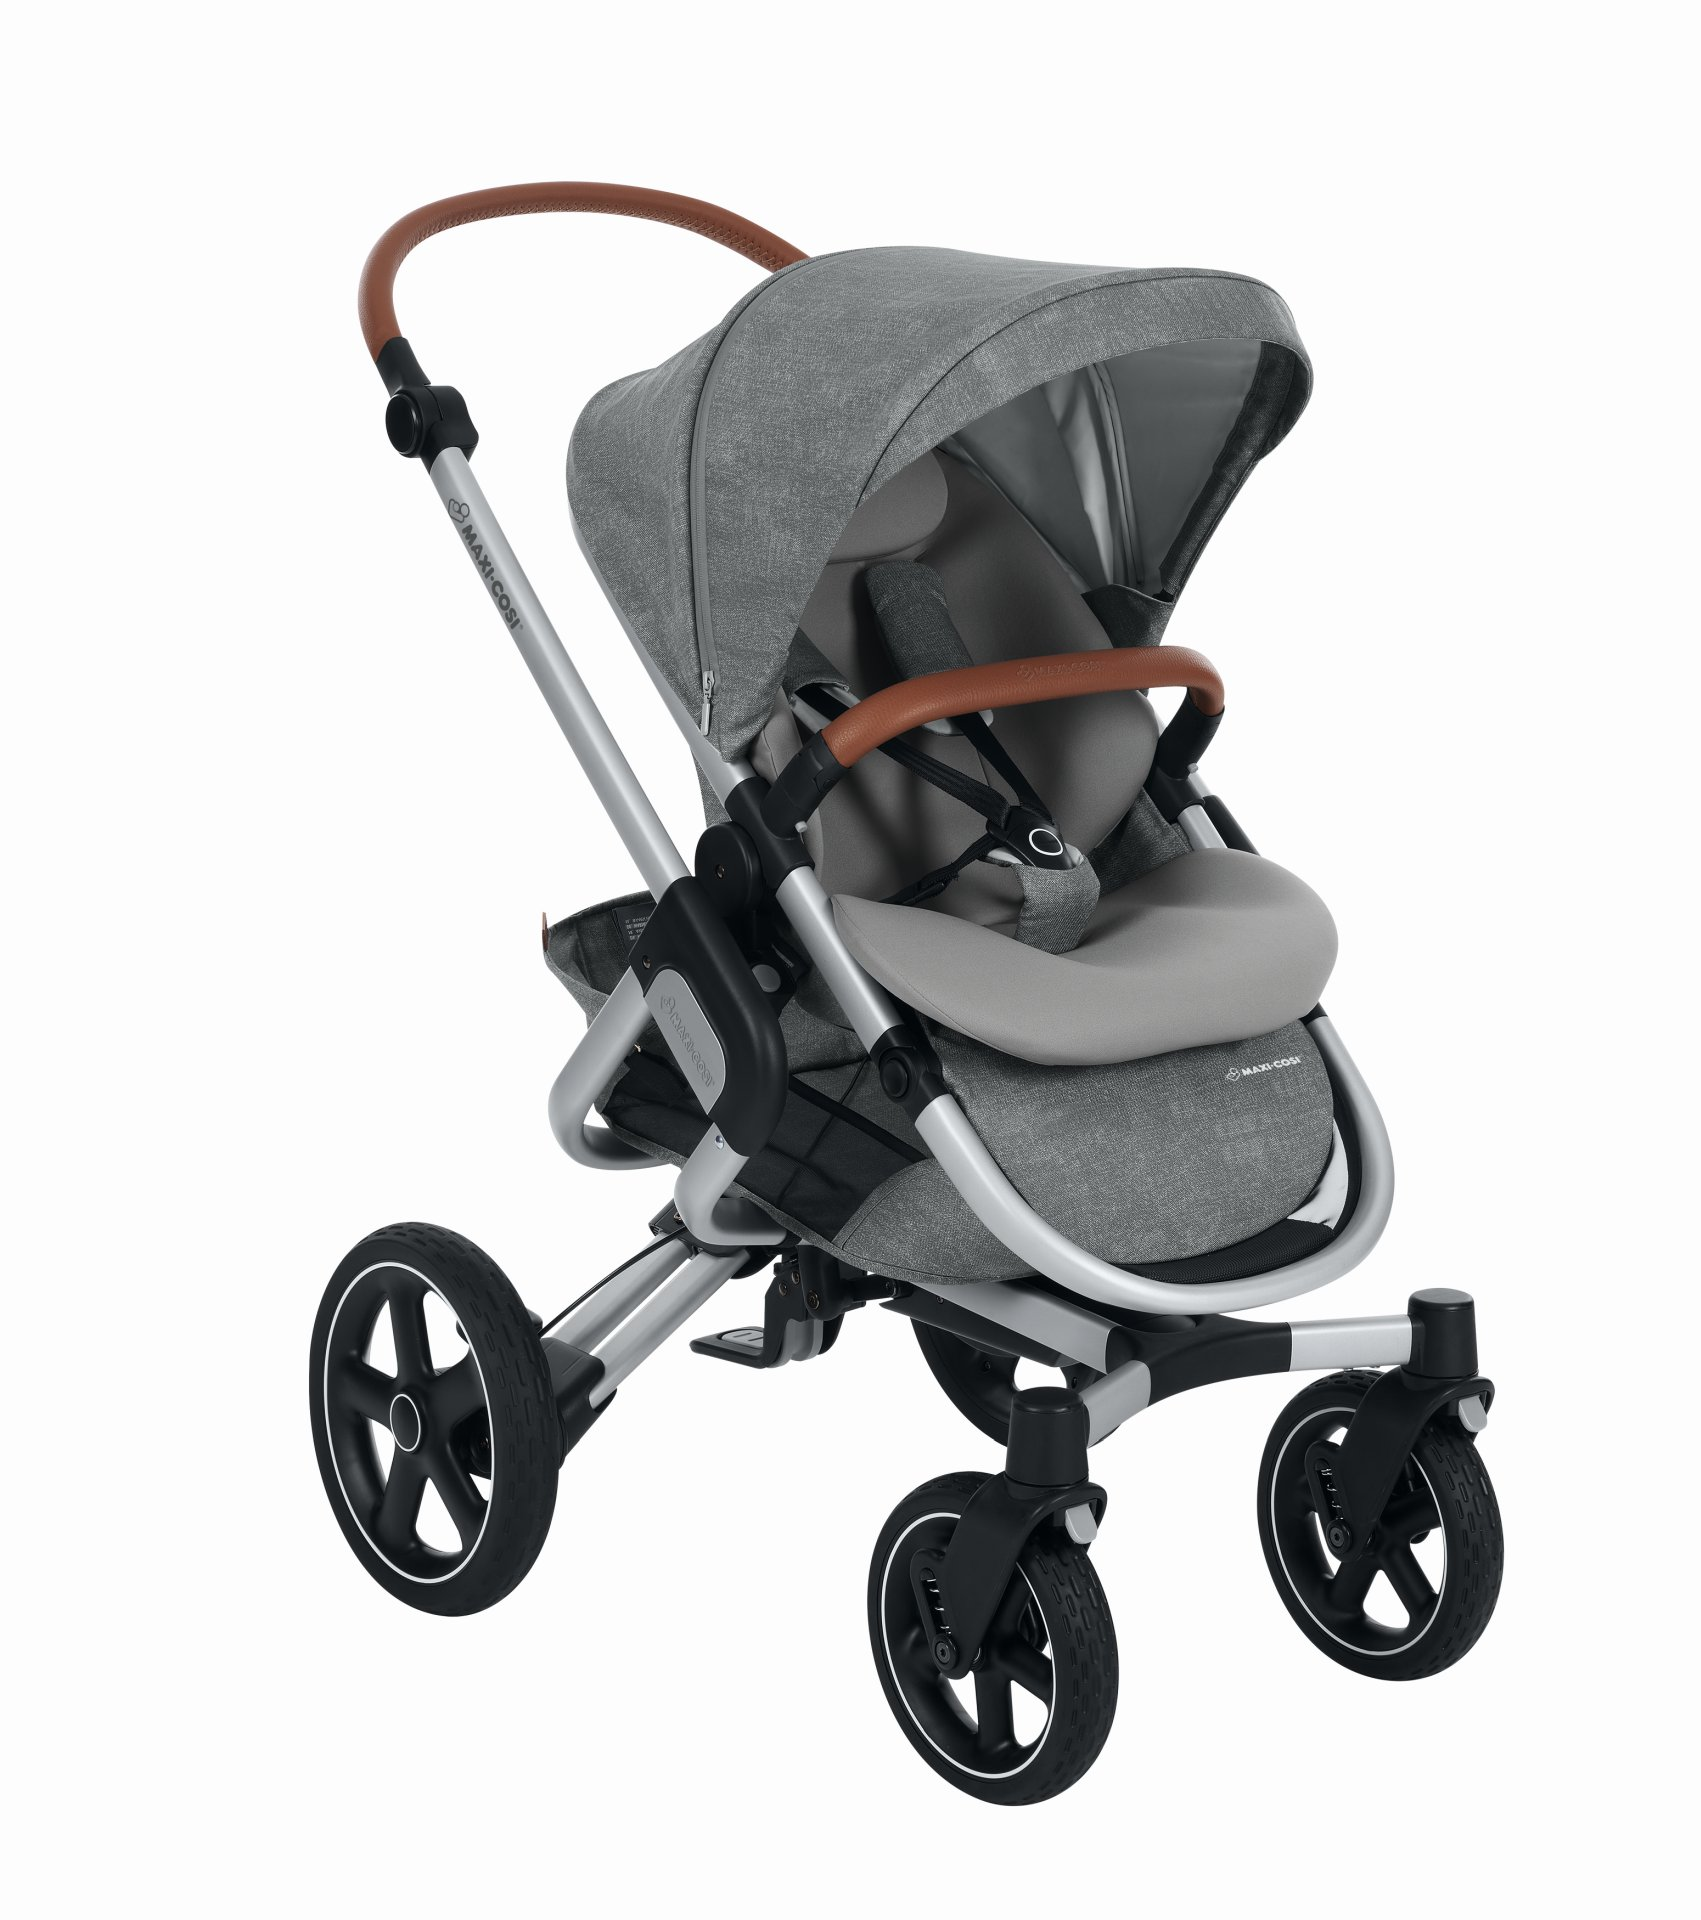 maxi cosi 4 wheels stroller nova 2019 nomad grey buy at. Black Bedroom Furniture Sets. Home Design Ideas